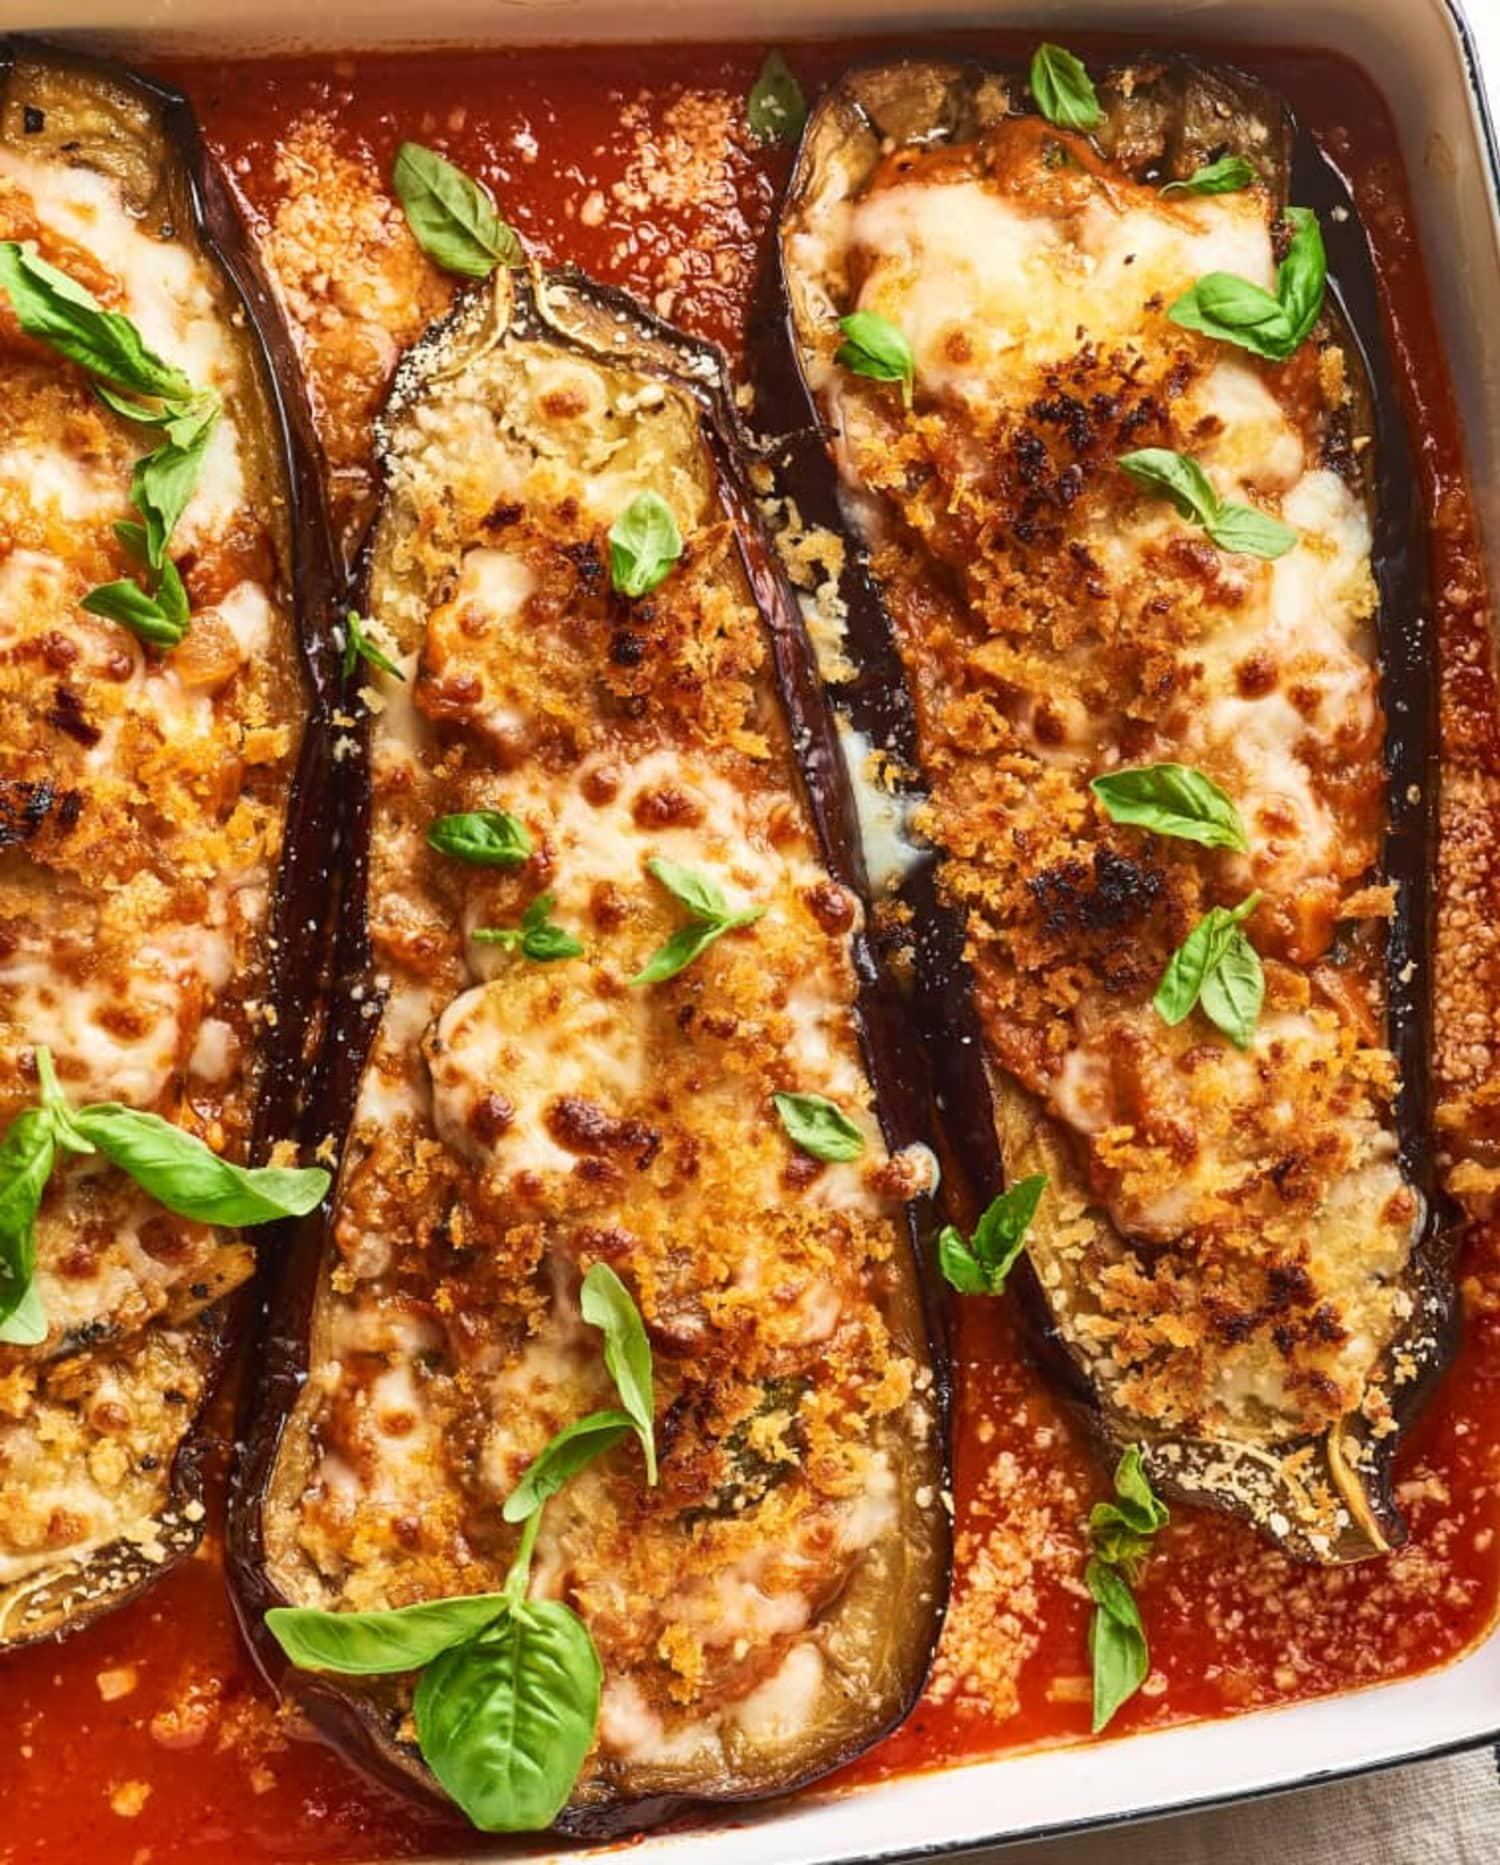 25 Eggplant Recipes to Make This Summer